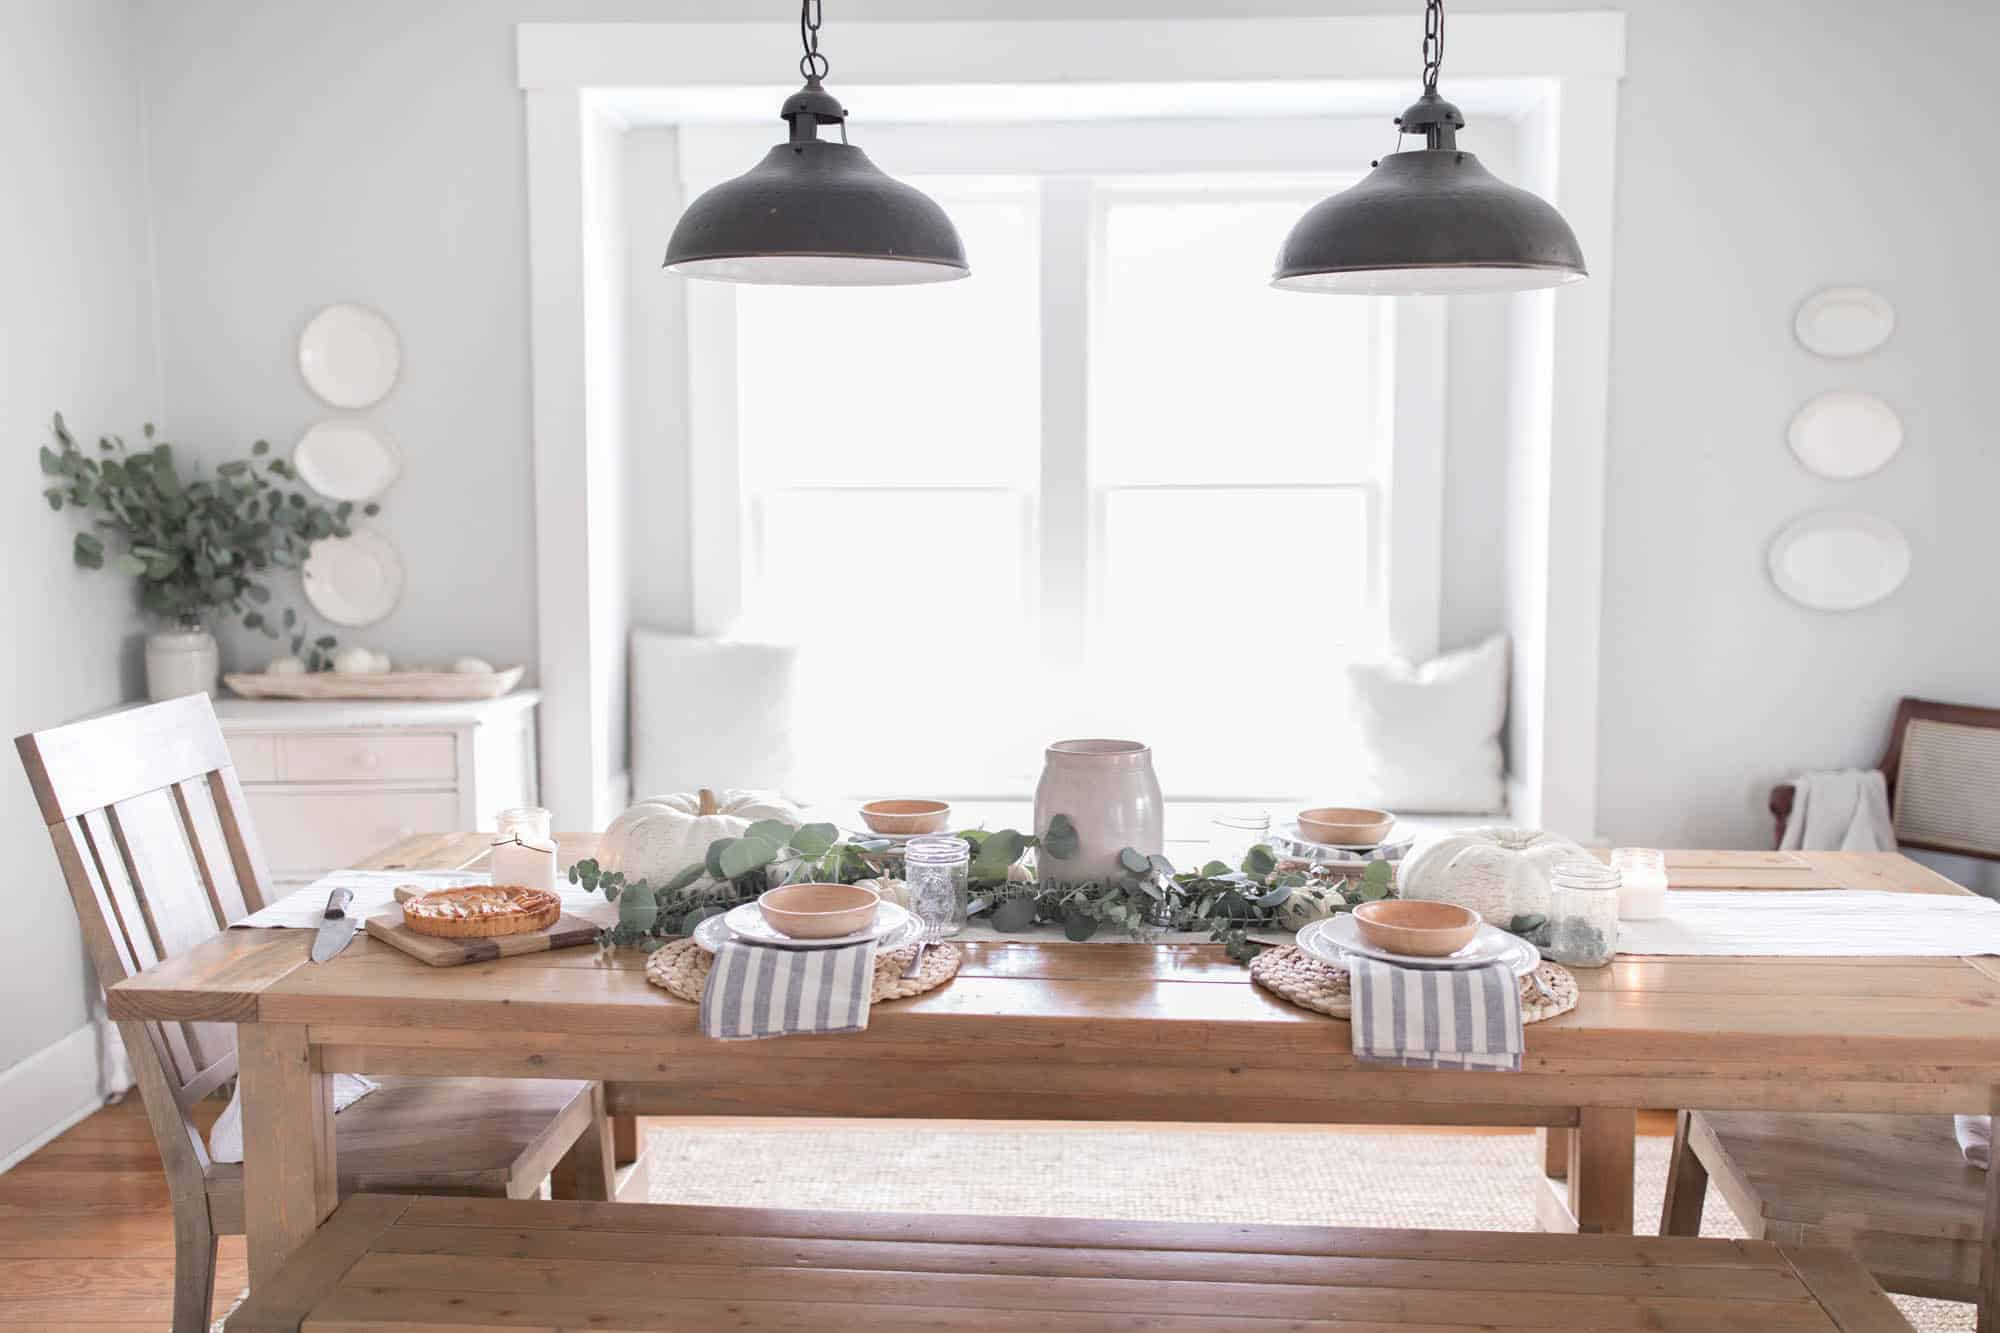 Charmant Farmhouse Thanksgiving Tablescape With Pumpkins And Eucalyptus